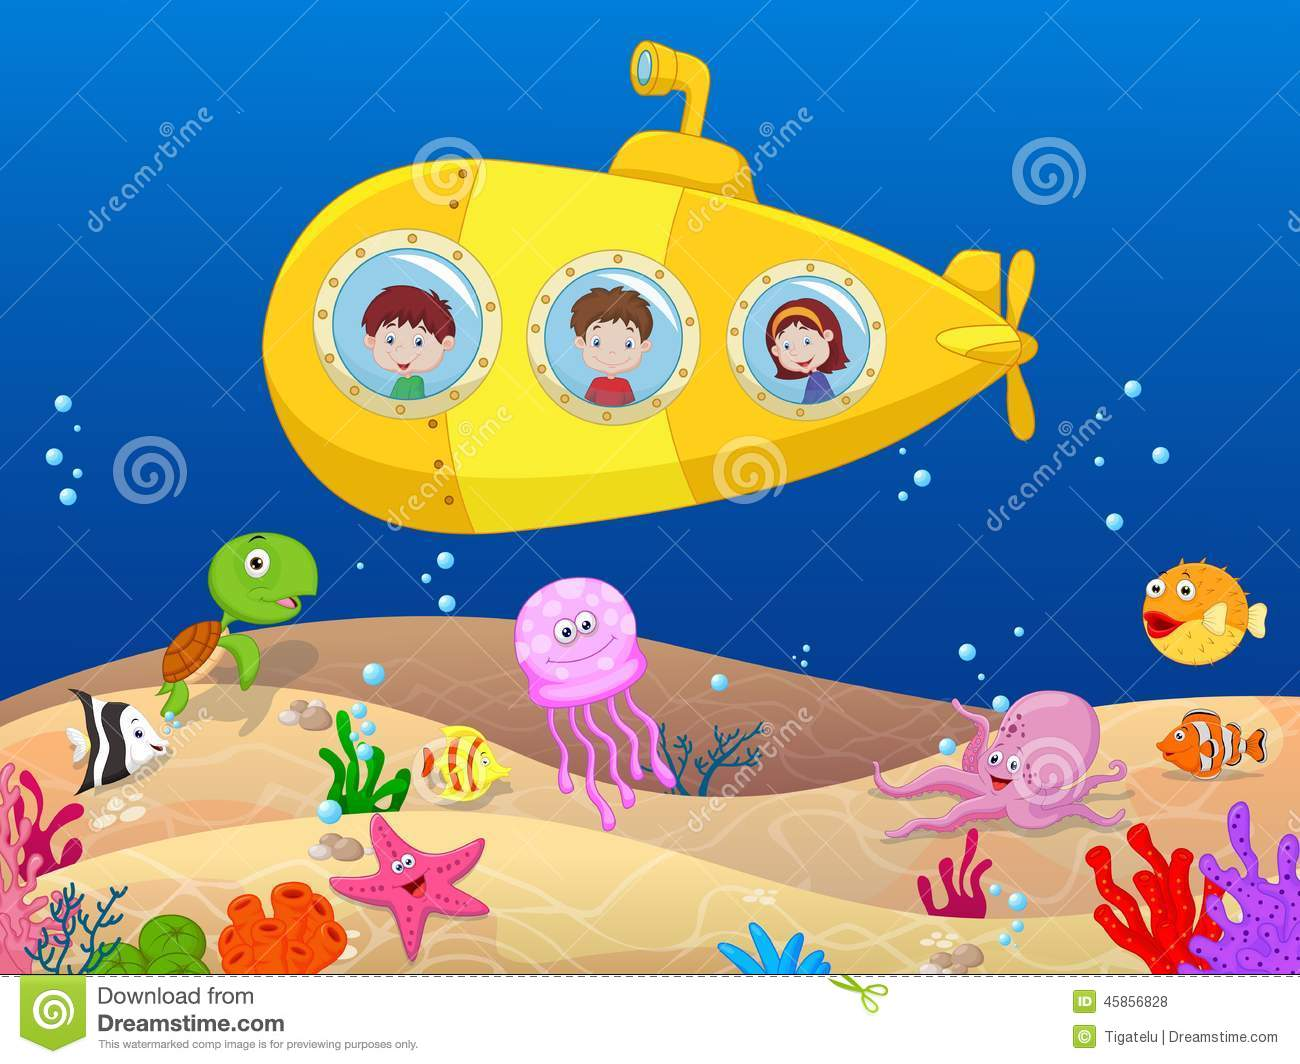 Todd Clipart 20 Fee Cliparts Download Imagenes: Happy Kids In Submarine Stock Vector. Illustration Of